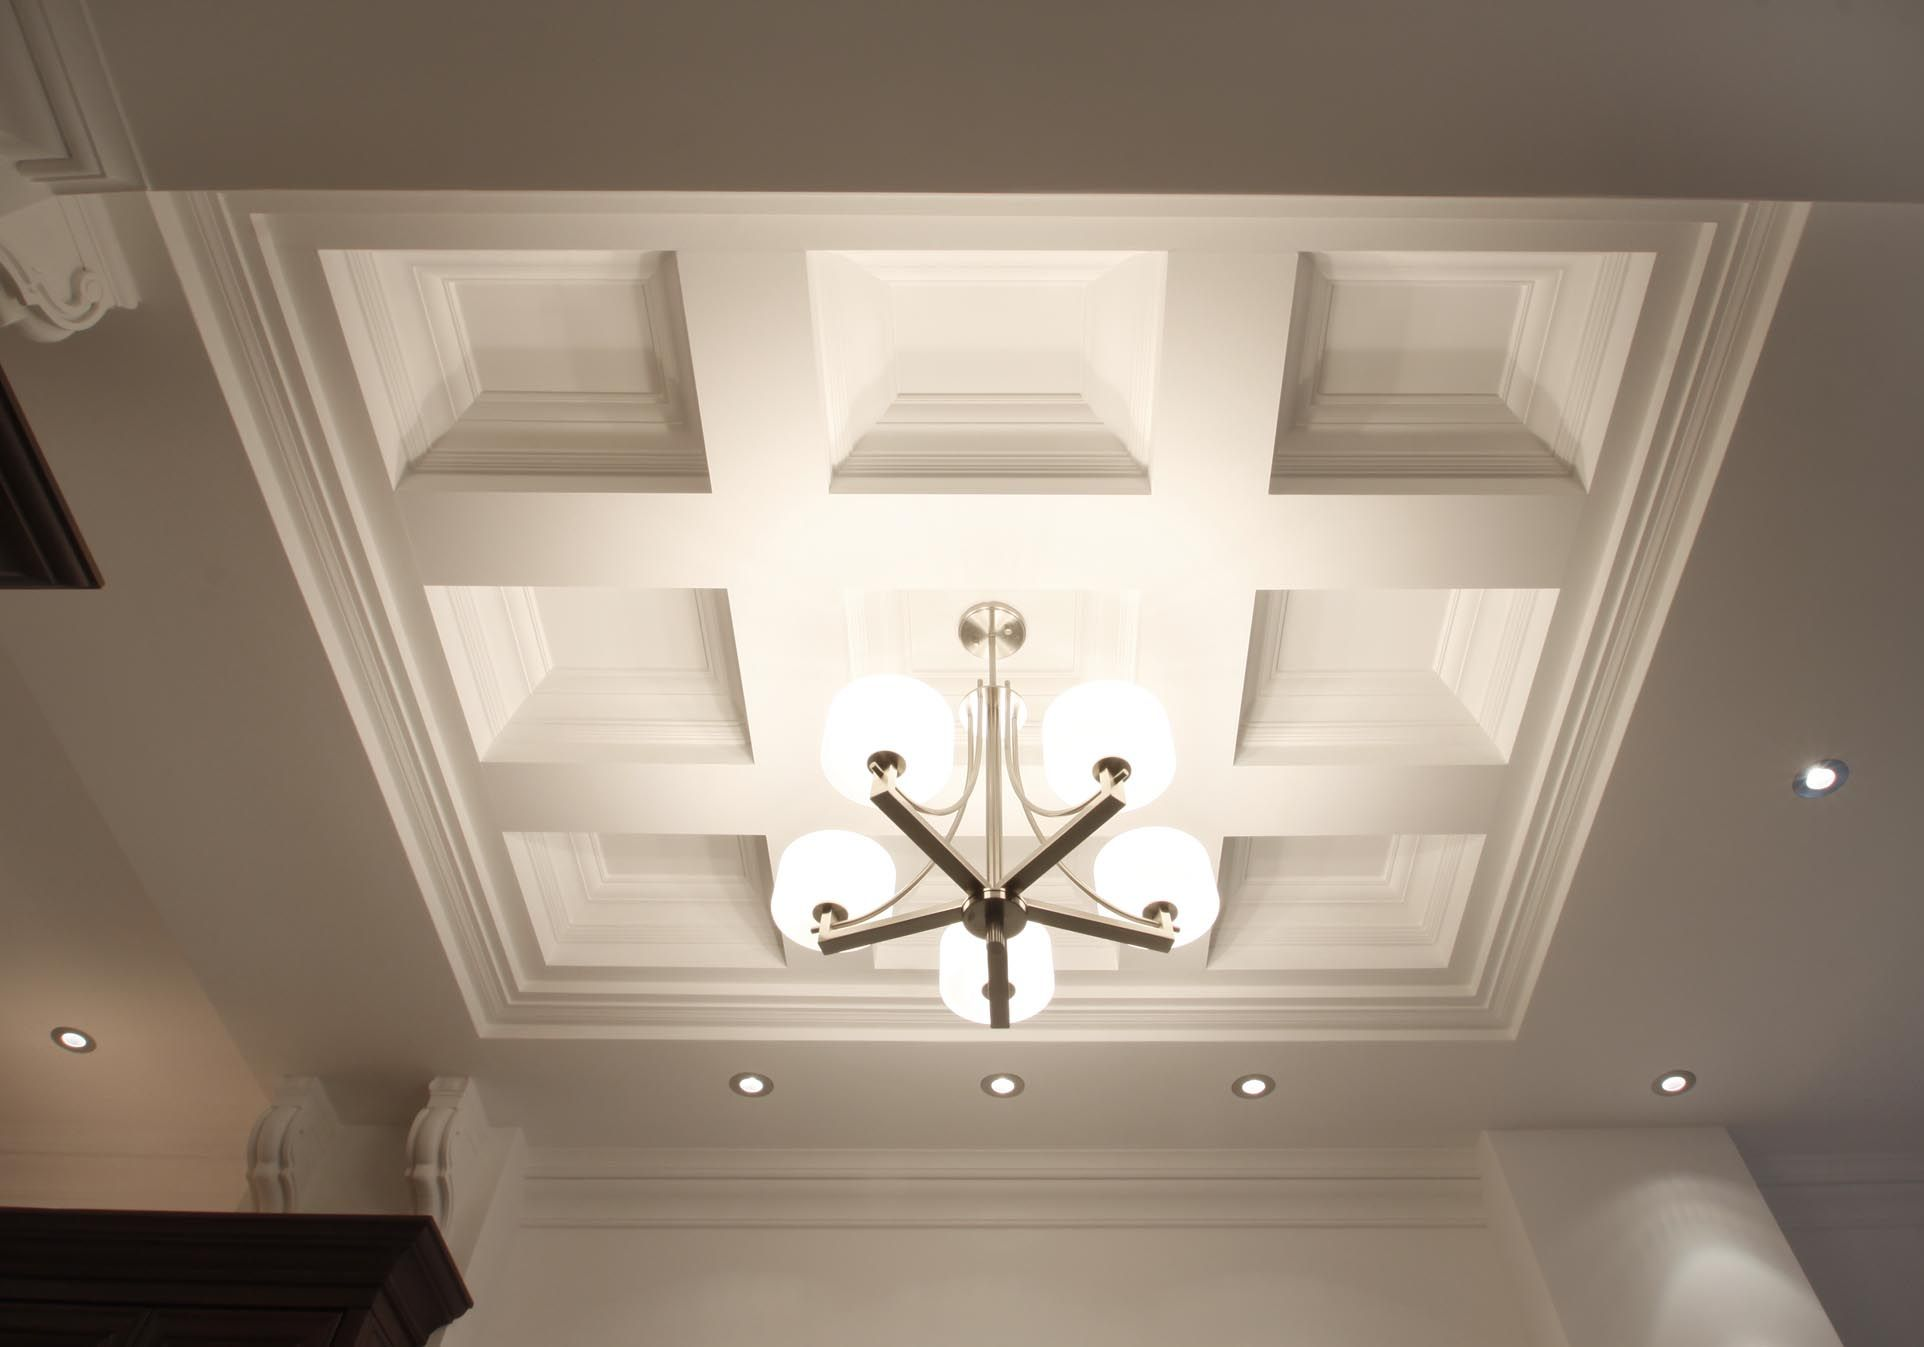 Coffered ceiling kits covey flush reno pinterest coffer coffered ceiling kits dailygadgetfo Image collections